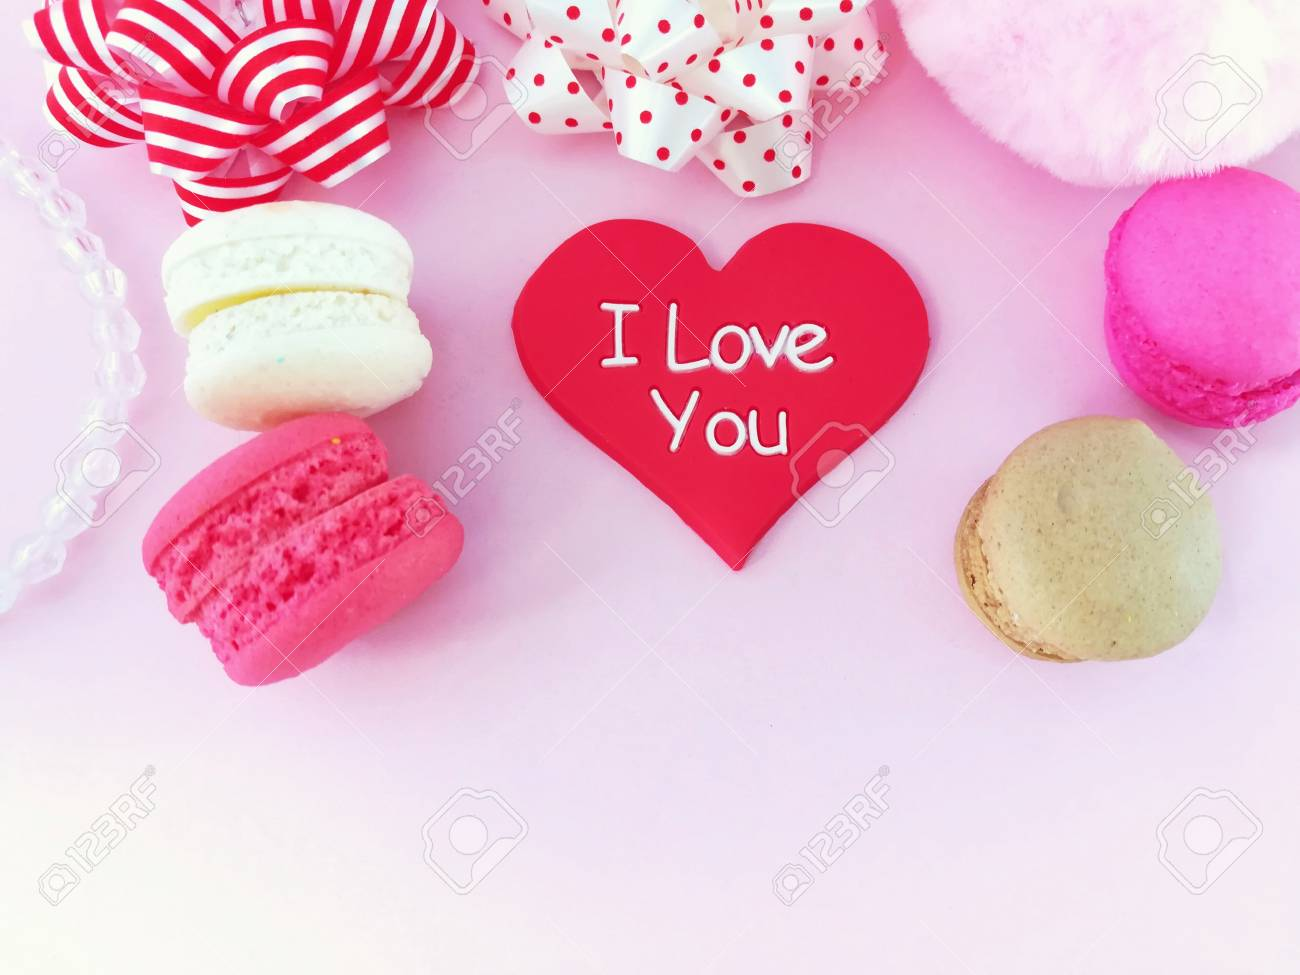 Decoration Beautiful Wallpaper With Delicious Macaron Red Heart